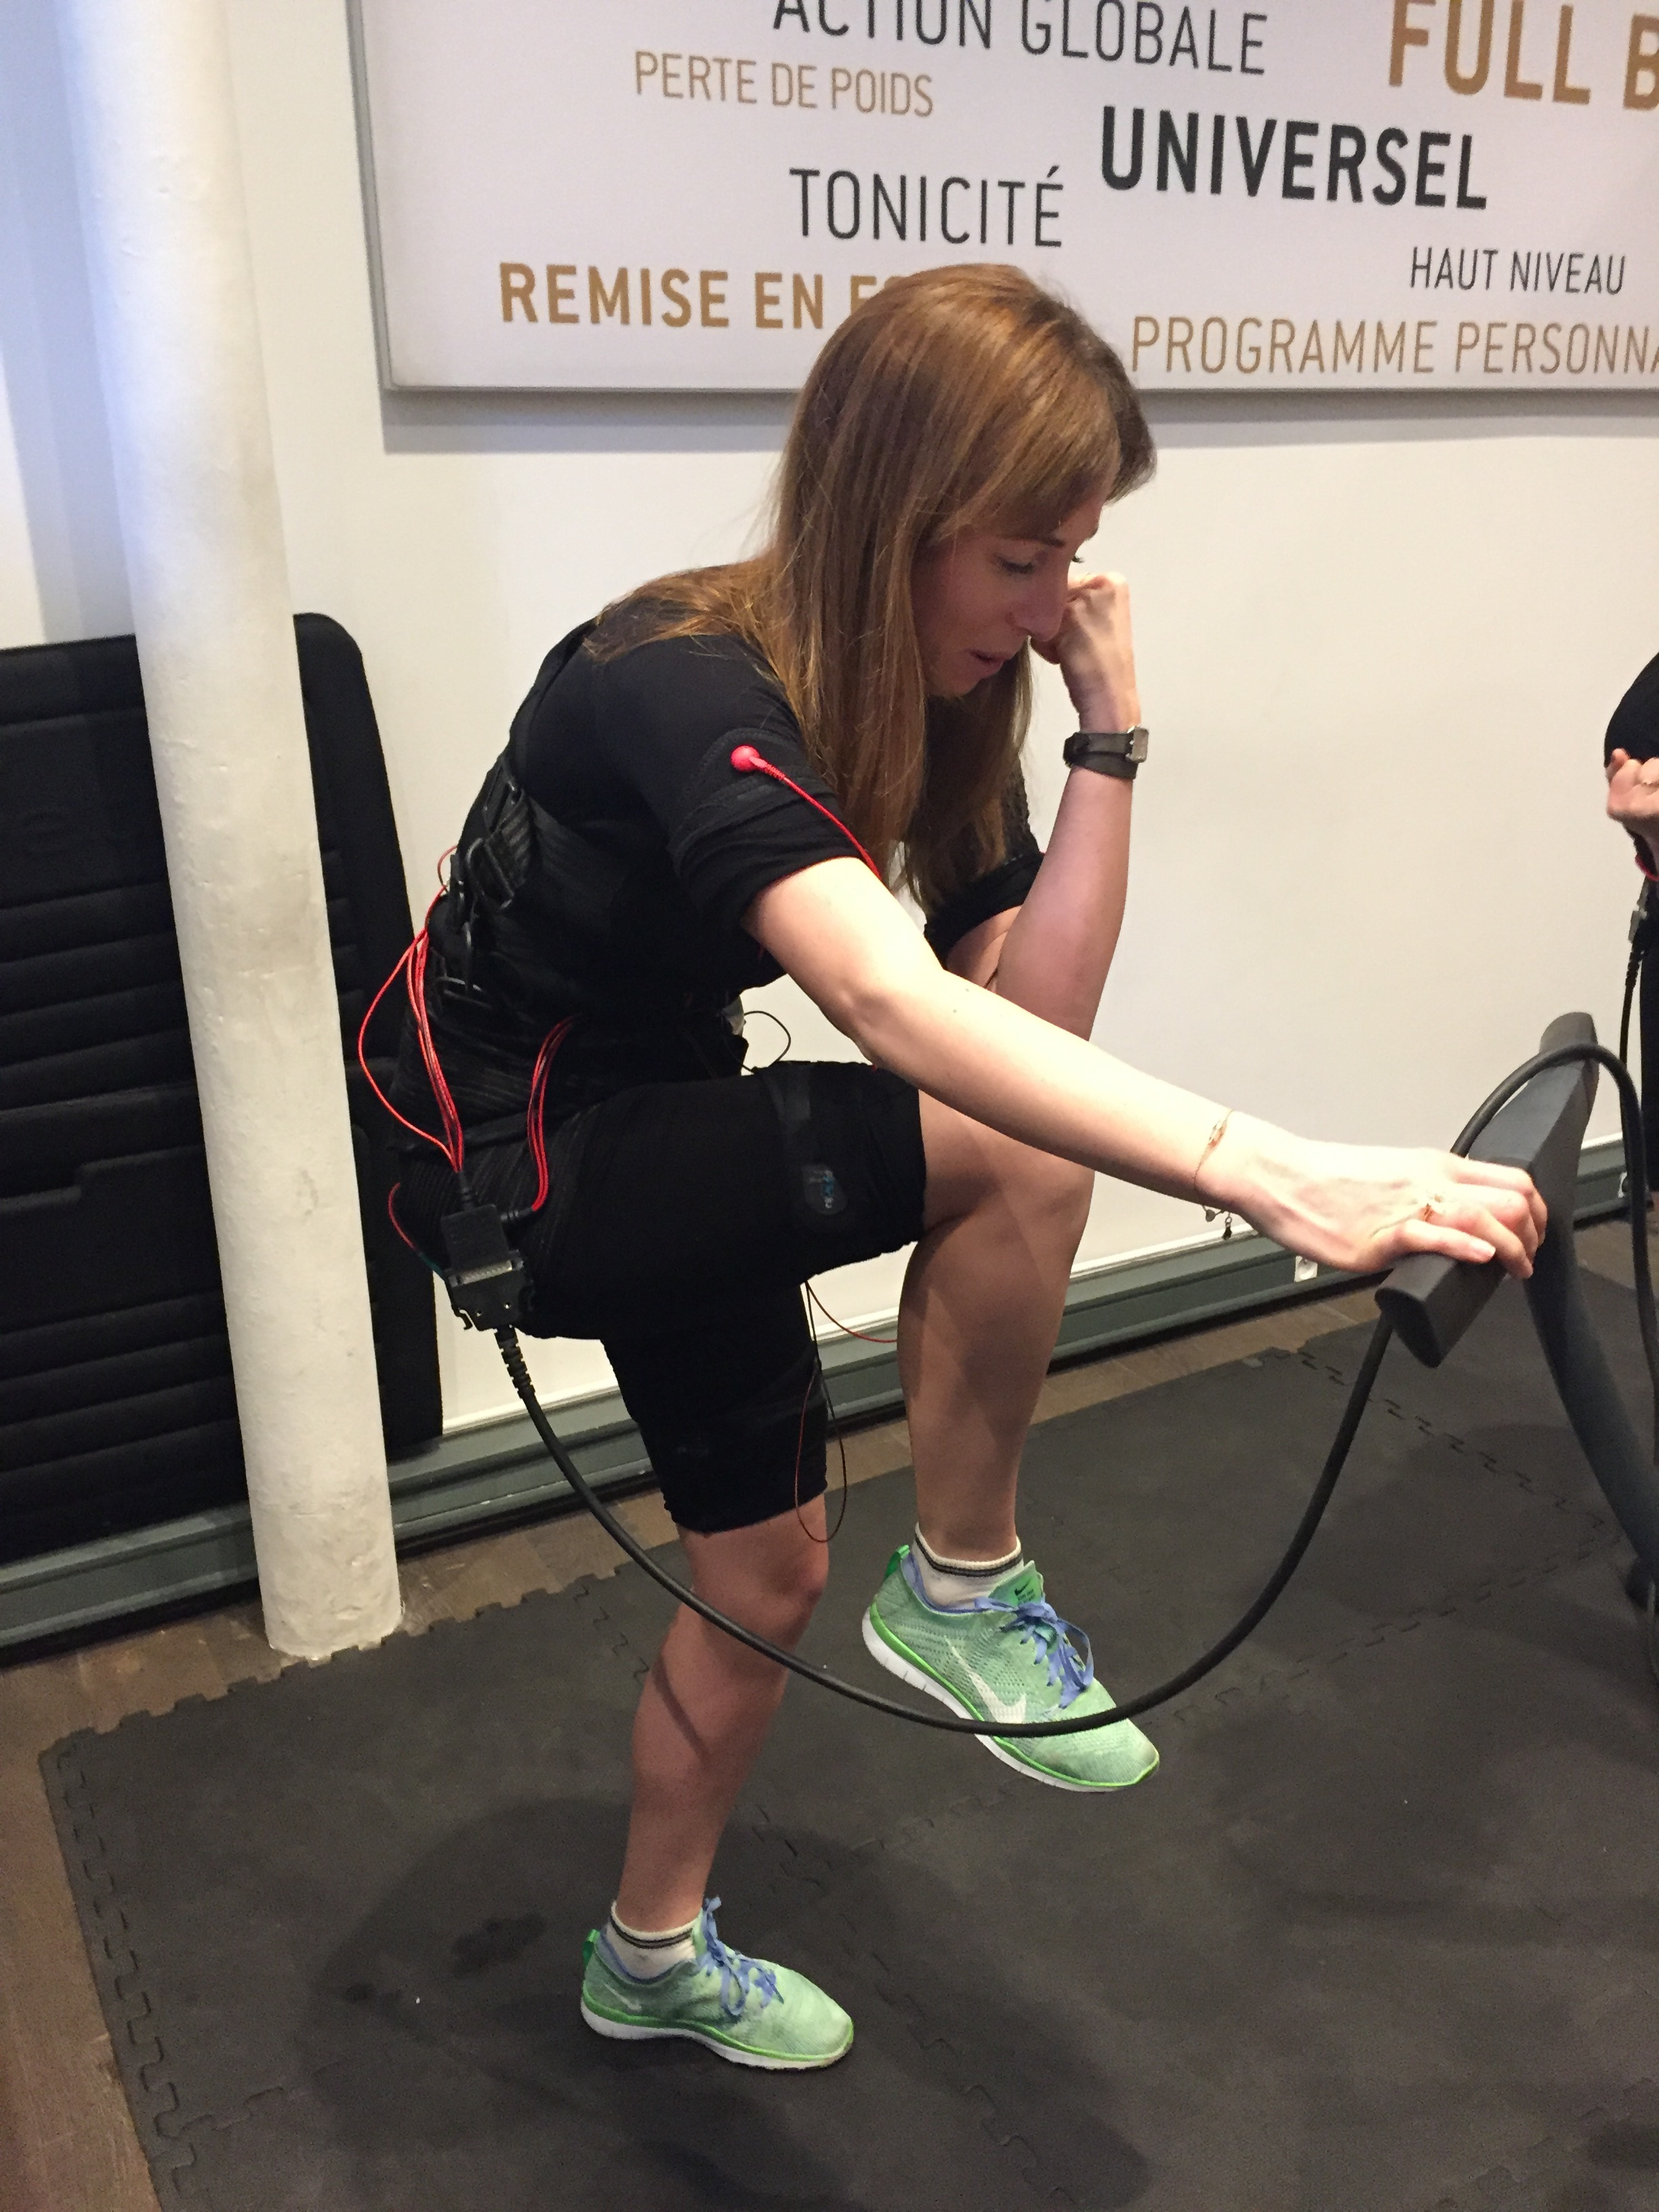 cardio, action sport, mihabodytec, électrostimulation, sport, sport paris, électrstimulation, healthy, healthylife, sport, fit, muscle, action sport paris